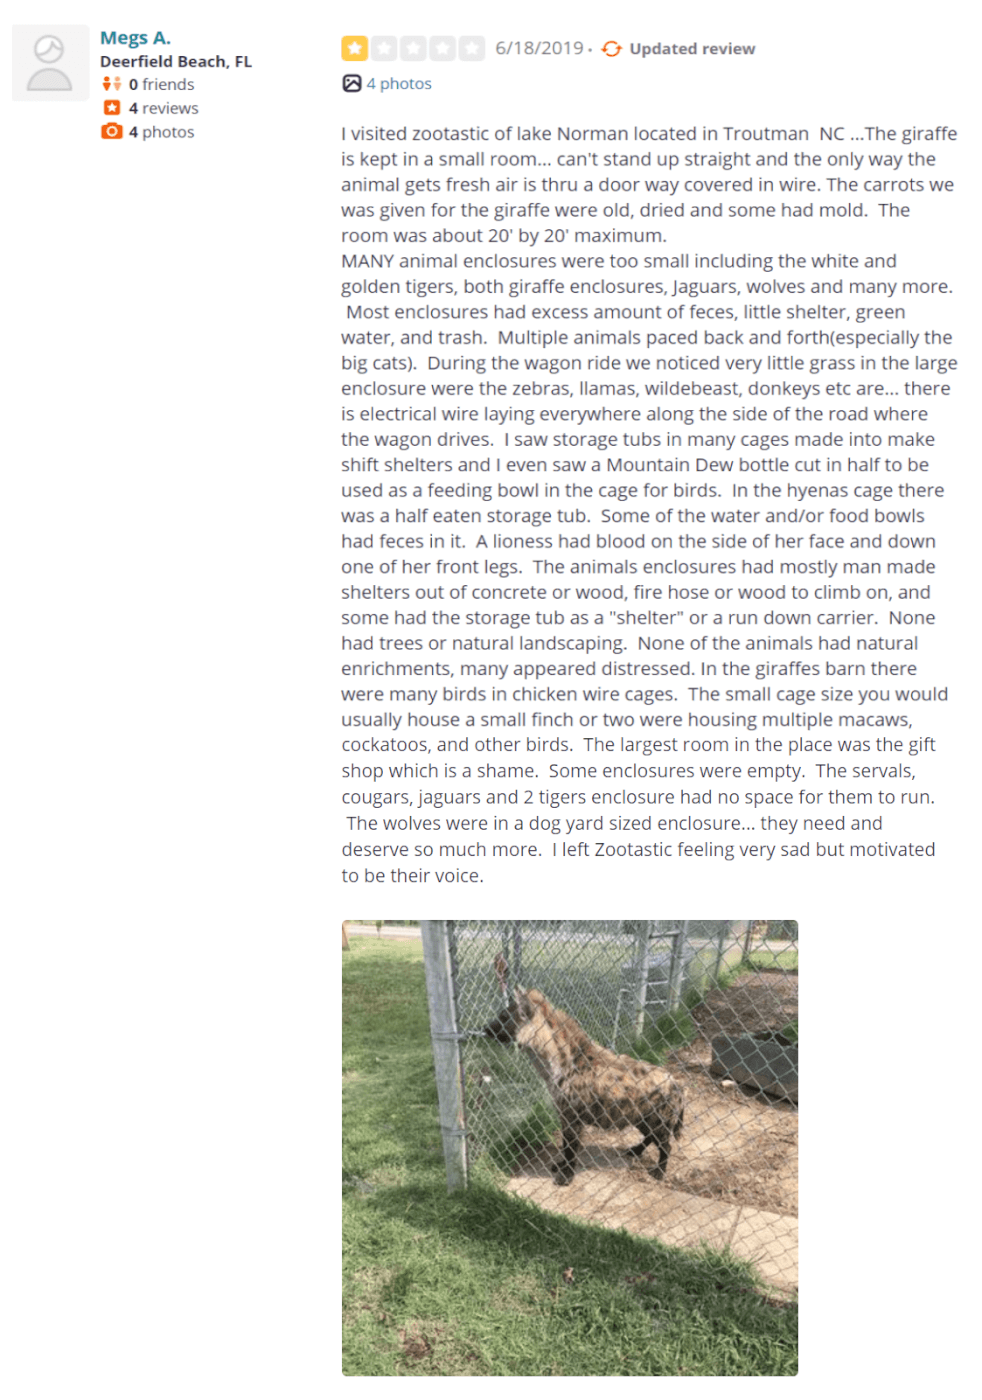 """I visited zootastic of lake Norman located in Troutman NC ...The giraffe is kept in a small room... can't stand up straight and the only way the animal gets fresh air is thru a door way covered in wire. The carrots we was given for the giraffe were old, dried and some had mold. The room was about 20' by 20' maximum. MANY animal enclosures were too small including the white and golden tigers, both giraffe enclosures, Jaguars, wolves and many more. Most enclosures had excess amount of feces, little shelter, green water, and trash. Multiple animals paced back and forth(especially the big cats). During the wagon ride we noticed very little grass in the large enclosure were the zebras, llamas, wildebeast, donkeys etc are... there is electrical wire laying everywhere along the side of the road where the wagon drives. I saw storage tubs in many cages made into make shift shelters and I even saw a Mountain Dew bottle cut in half to be used as a feeding bowl in the cage for birds. In the hyenas cage there was a half eaten storage tub. Some of the water and/or food bowls had feces in it. A lioness had blood on the side of her face and down one of her front legs. The animals enclosures had mostly man made shelters out of concrete or wood, fire hose or wood to climb on, and some had the storage tub as a """"shelter"""" or a run down carrier. None had trees or natural landscaping. None of the animals had natural enrichments, many appeared distressed. In the giraffes barn there were many birds in chicken wire cages. The small cage size you would usually house a small finch or two were housing multiple macaws, cockatoos, and other birds. The largest room in the place was the gift shop which is a shame. Some enclosures were empty. The servals, cougars, jaguars and 2 tigers enclosure had no space for them to run. The wolves were in a dog yard sized enclosure... they need and deserve so much more. I left Zootastic feeling very sad but motivated to be their voice."""